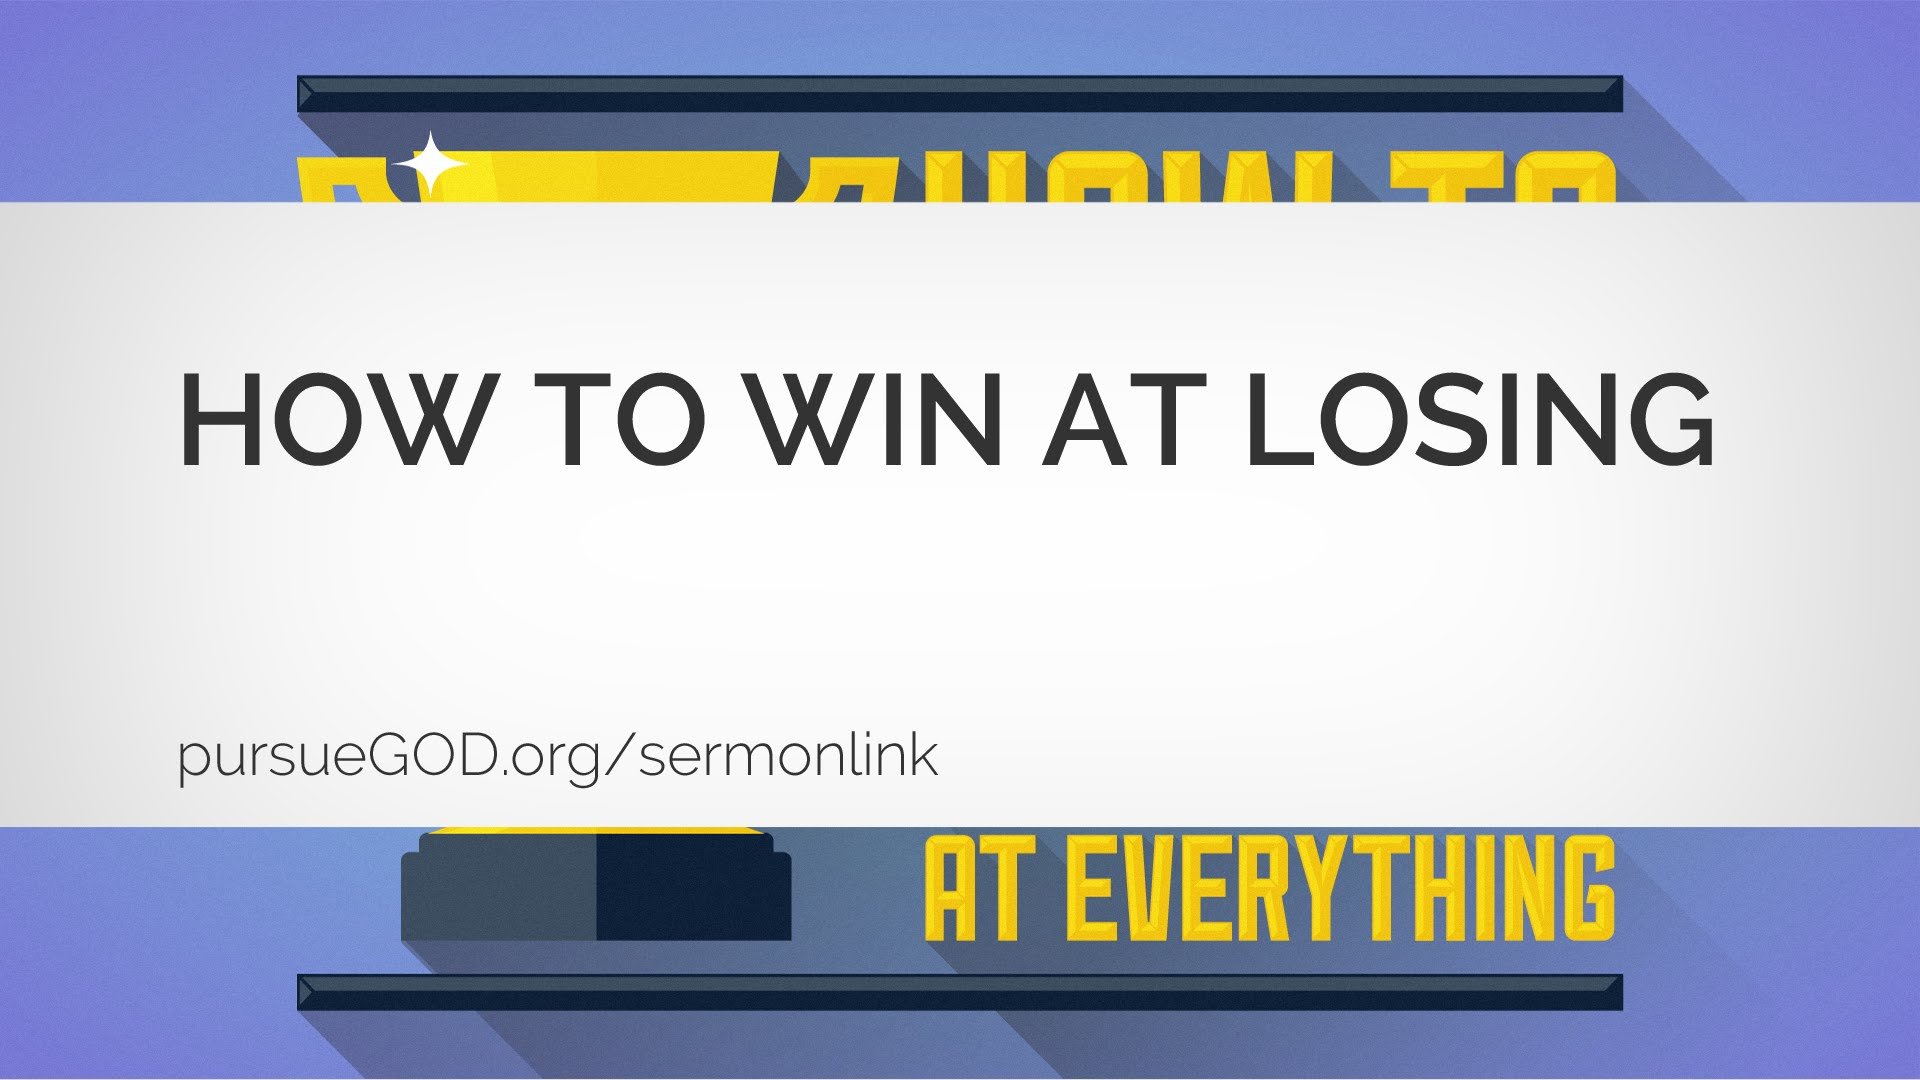 How to Win at Losing